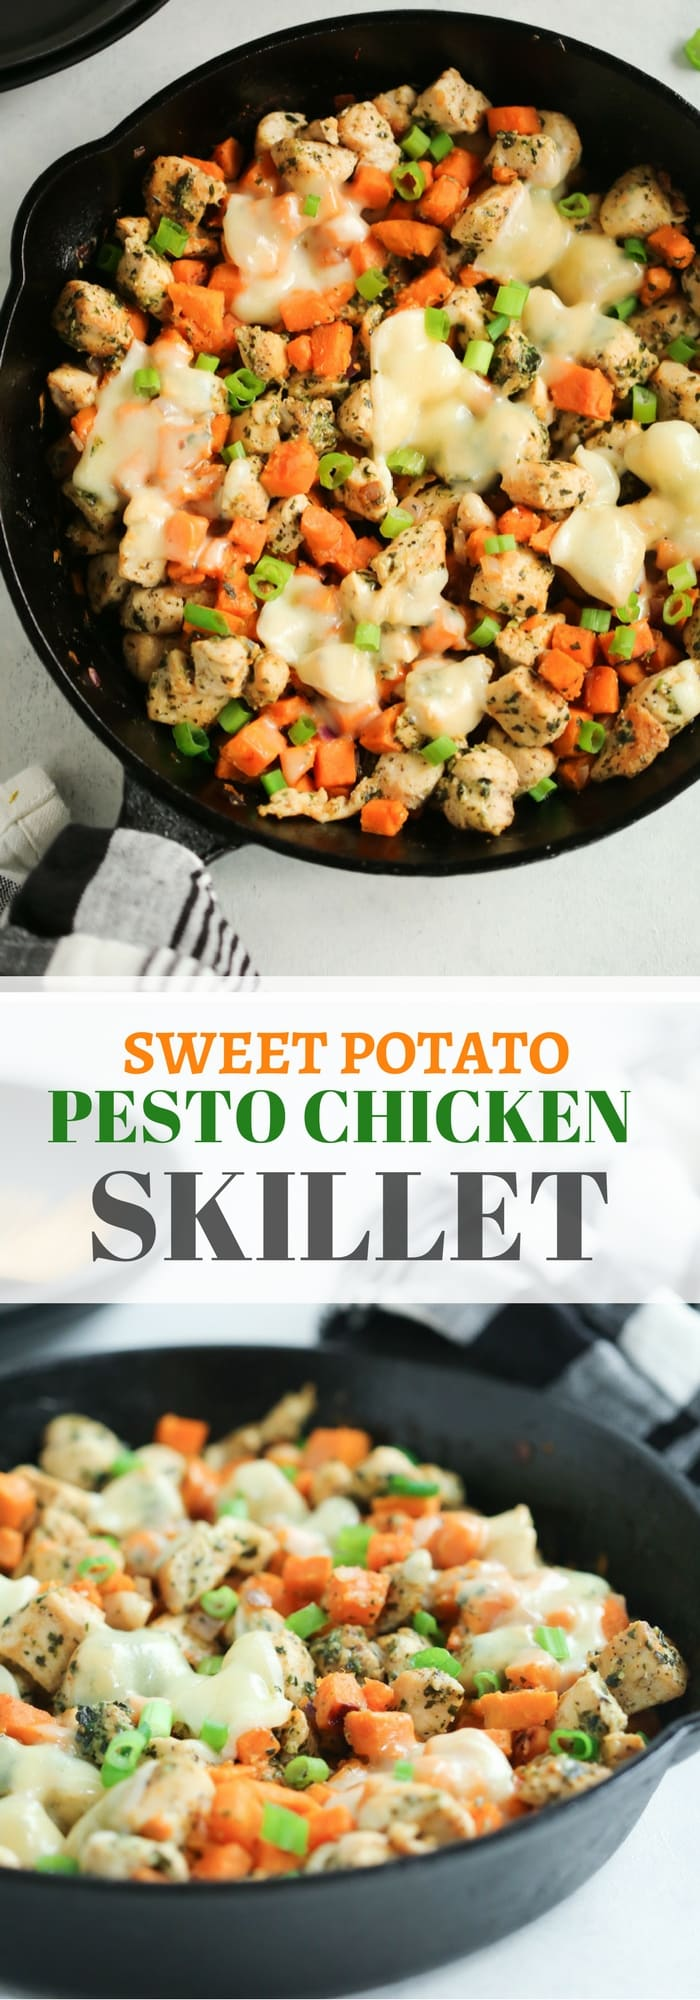 Sweet Potato Chicken Pesto Skillet - Sweet Potato Pesto Chicken Skillet is the easiest recipe you can prepare for dinner and it's low-carb, gluten-free and one-pan, which is great to clean up!